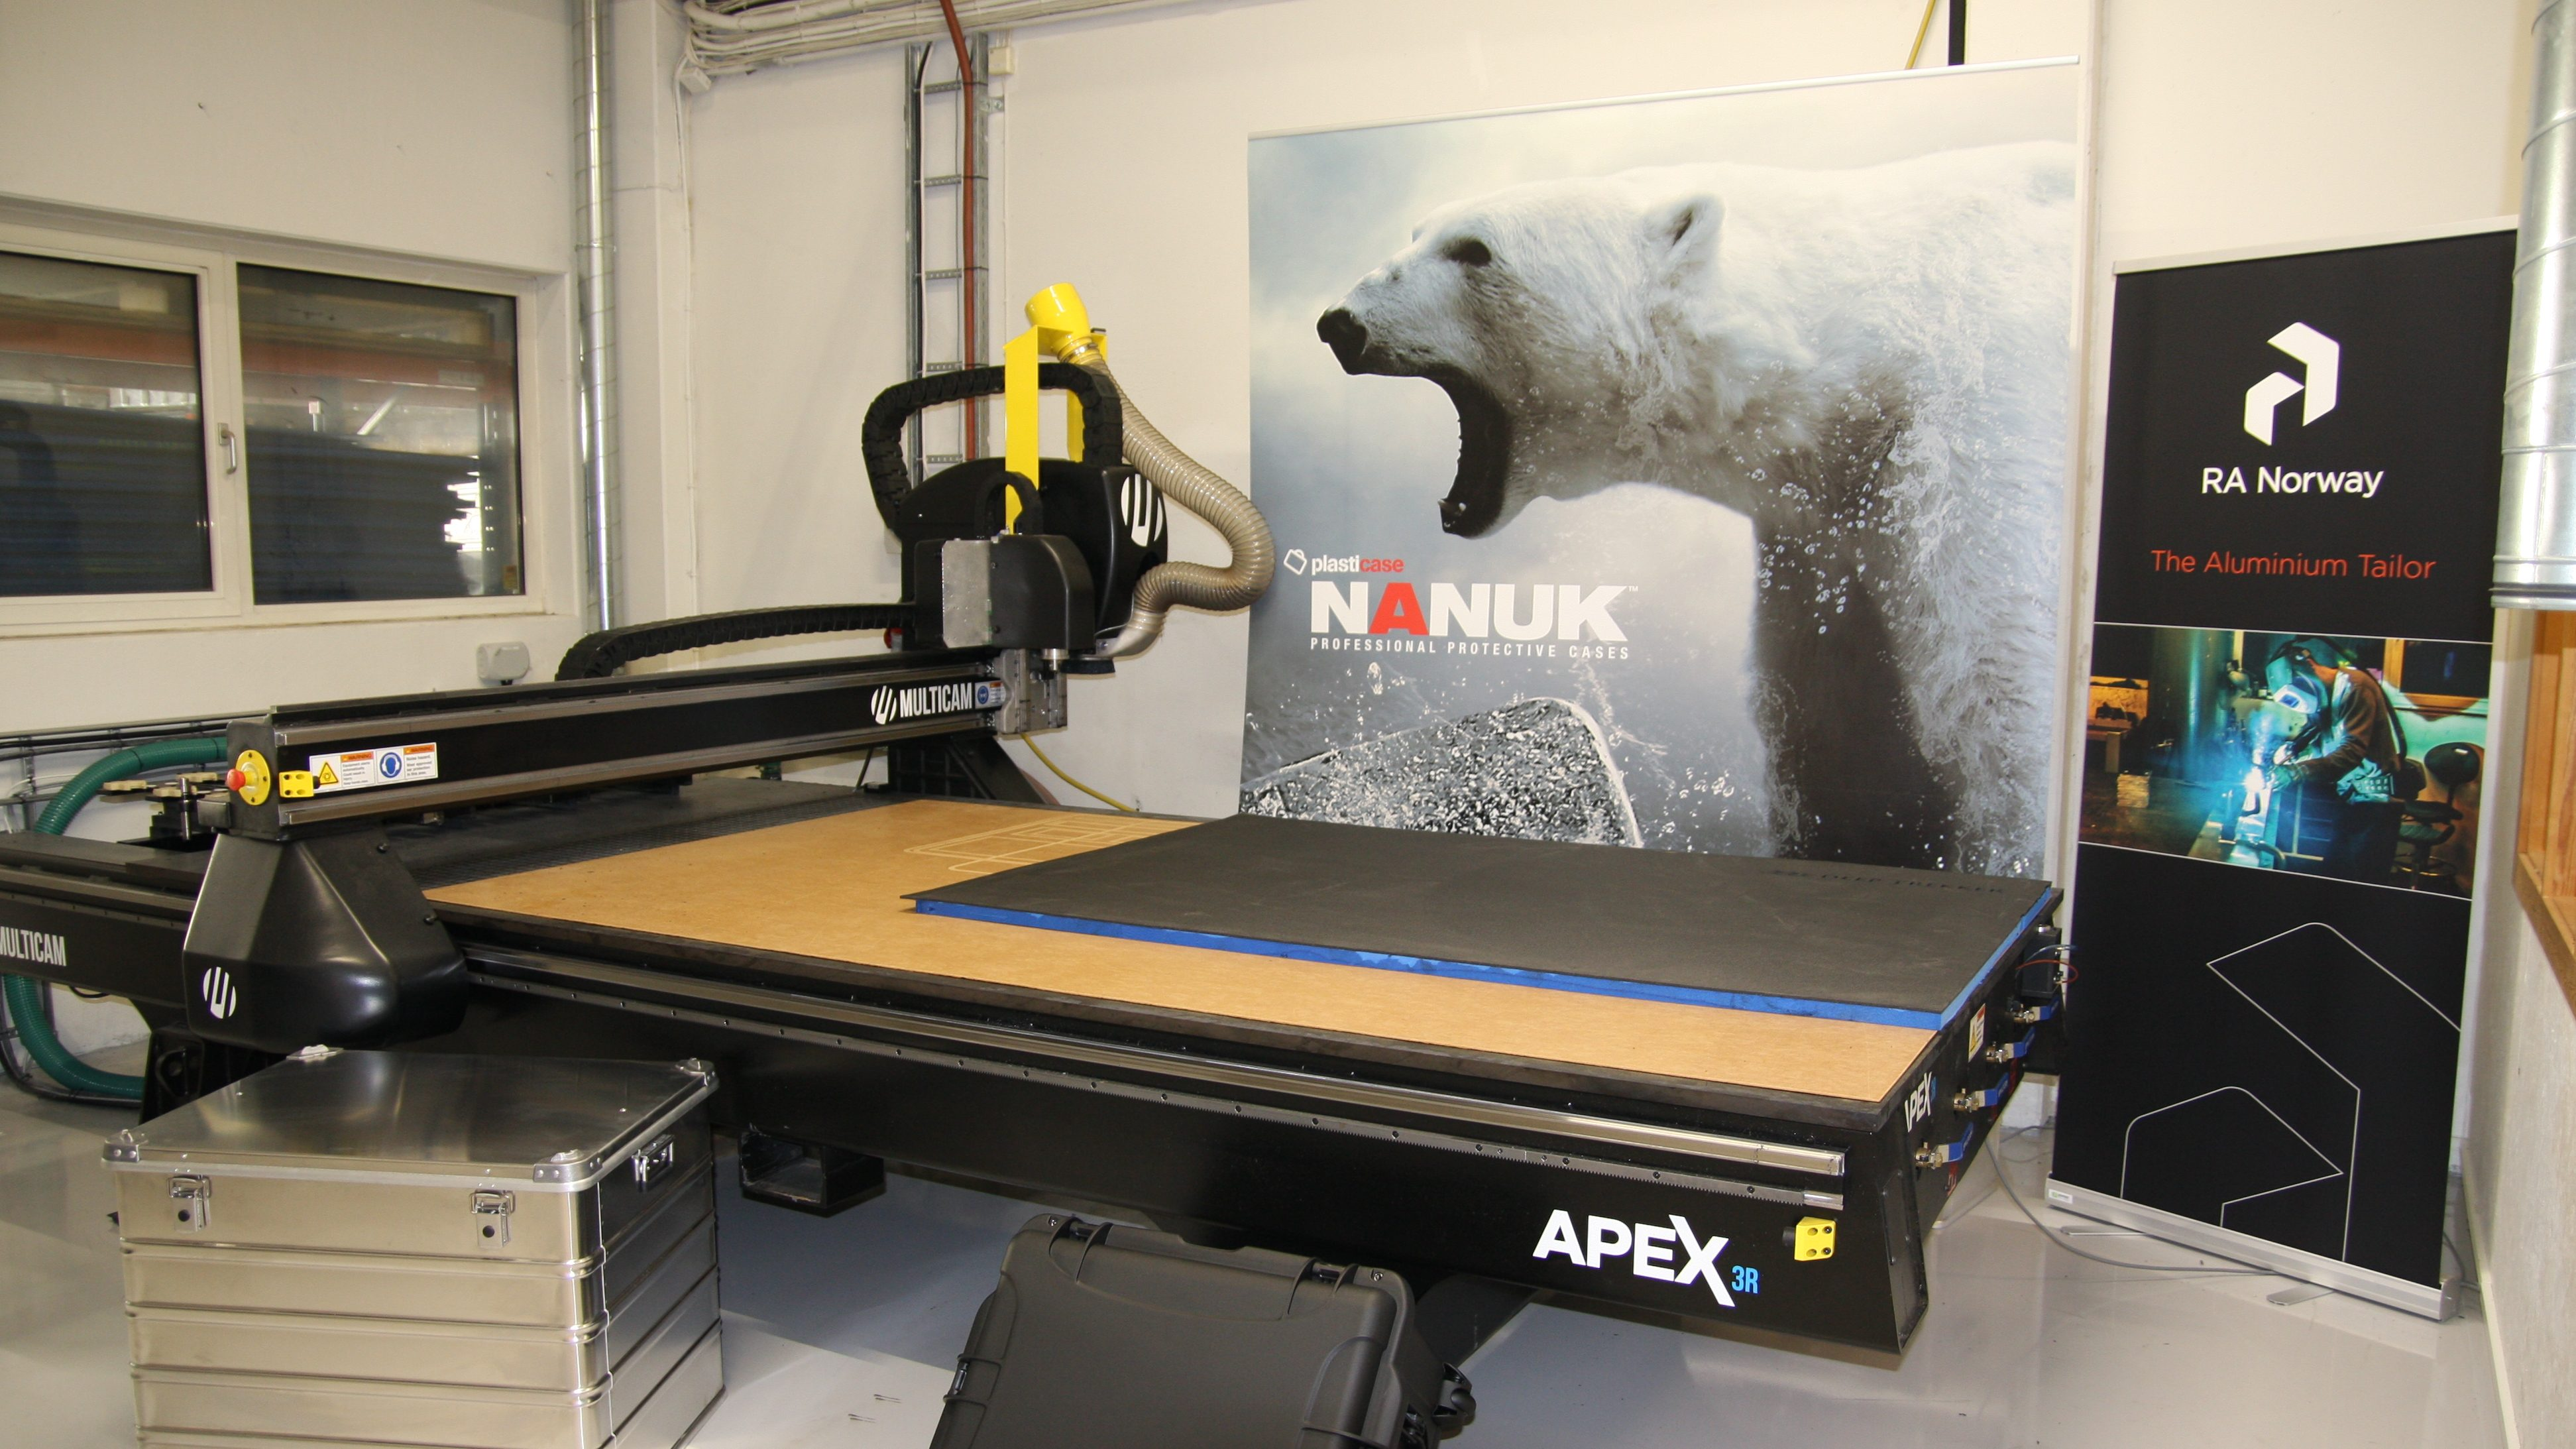 New CNC cutter in place